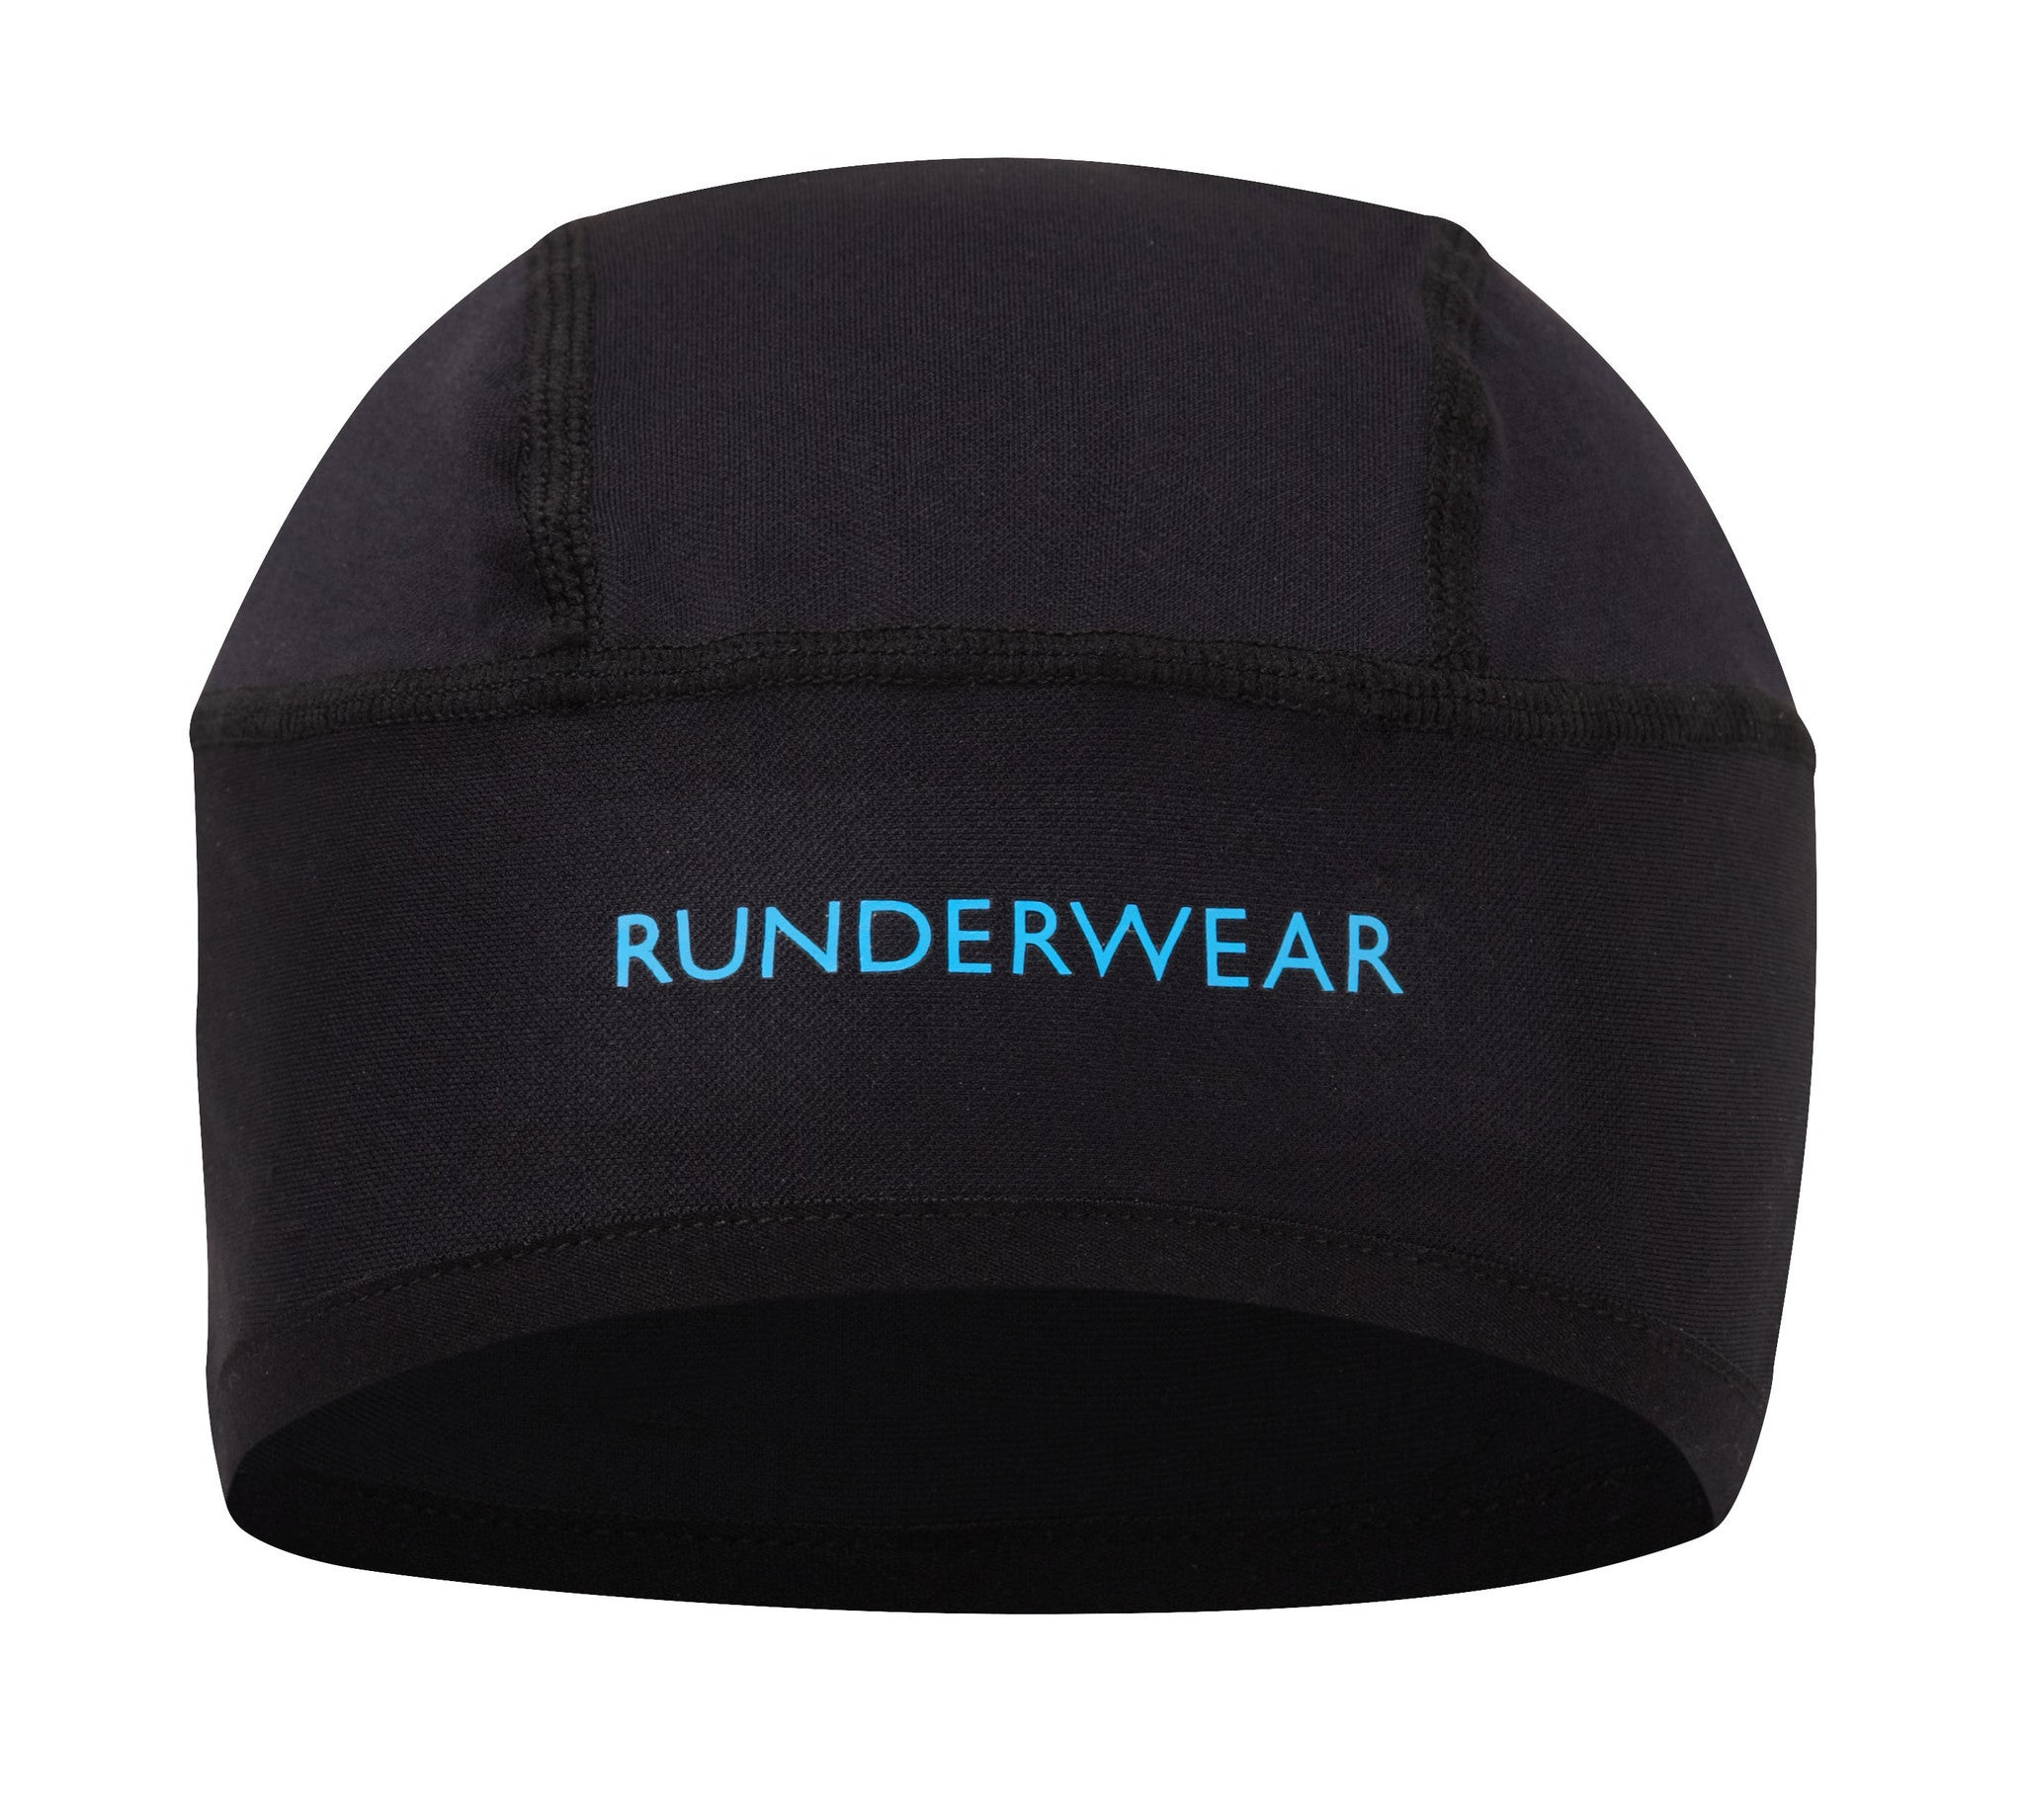 Runderwear Unisex Running and Cycling Beanie Hat with Zipped Pocket